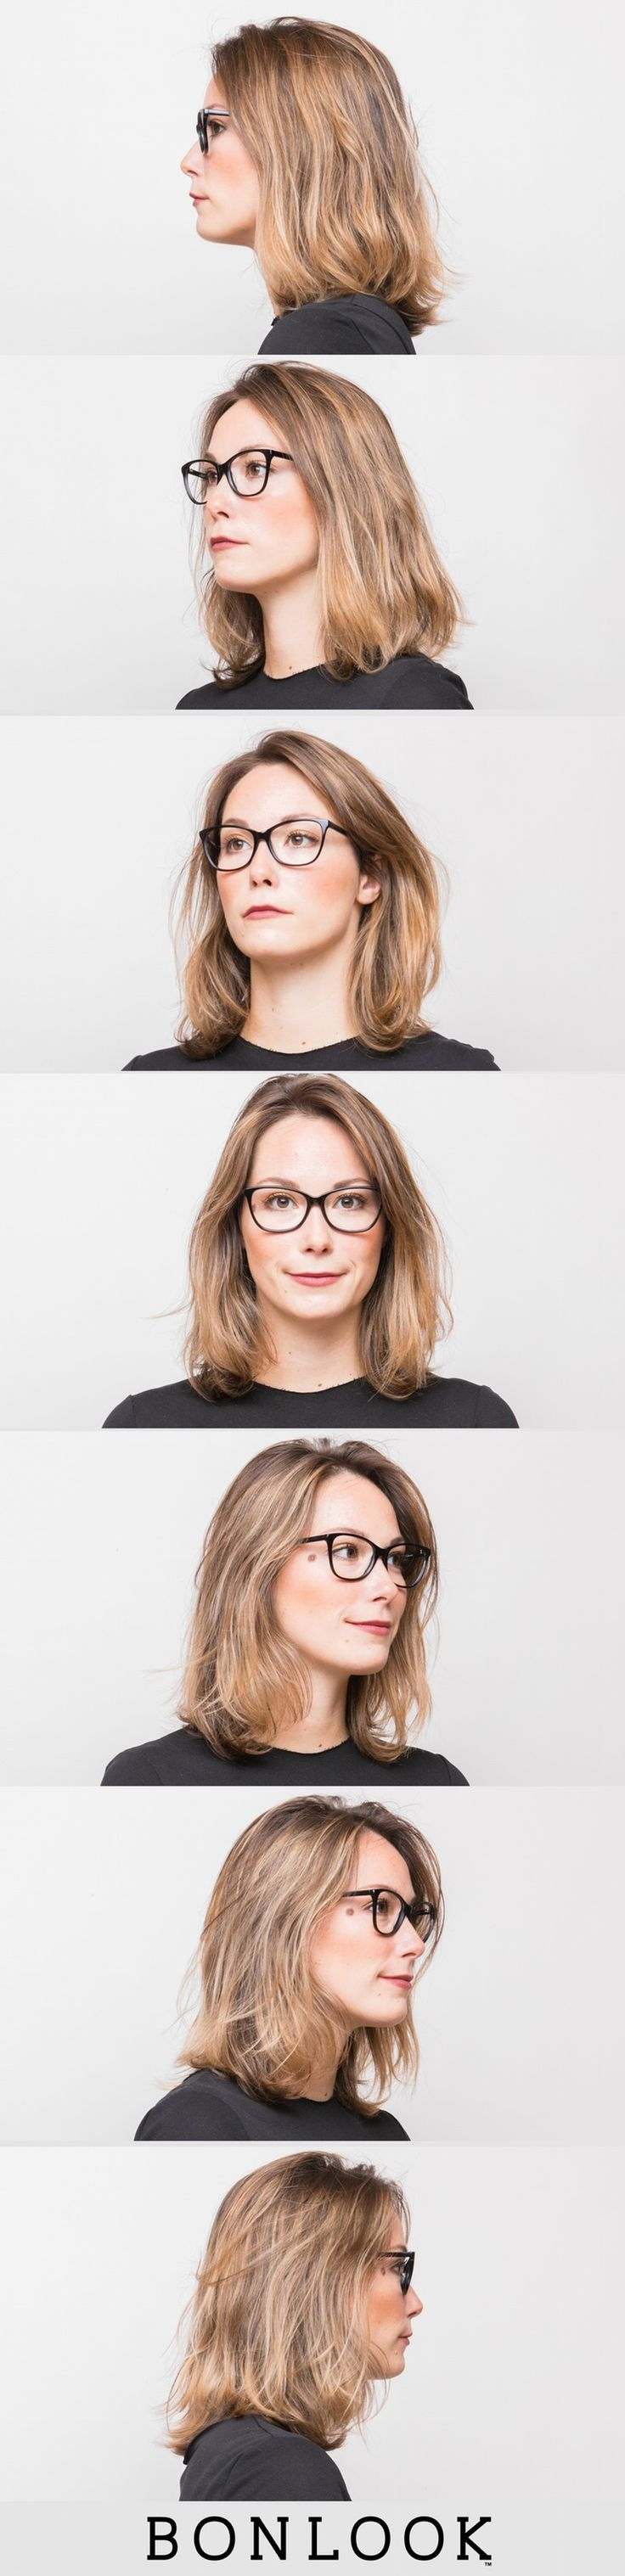 Flair Onyx - Flair is the perfect eyewear for the one's that have a natural instinct for fashion. Versatile and trendy, these frames will fit every face shape with elegance.